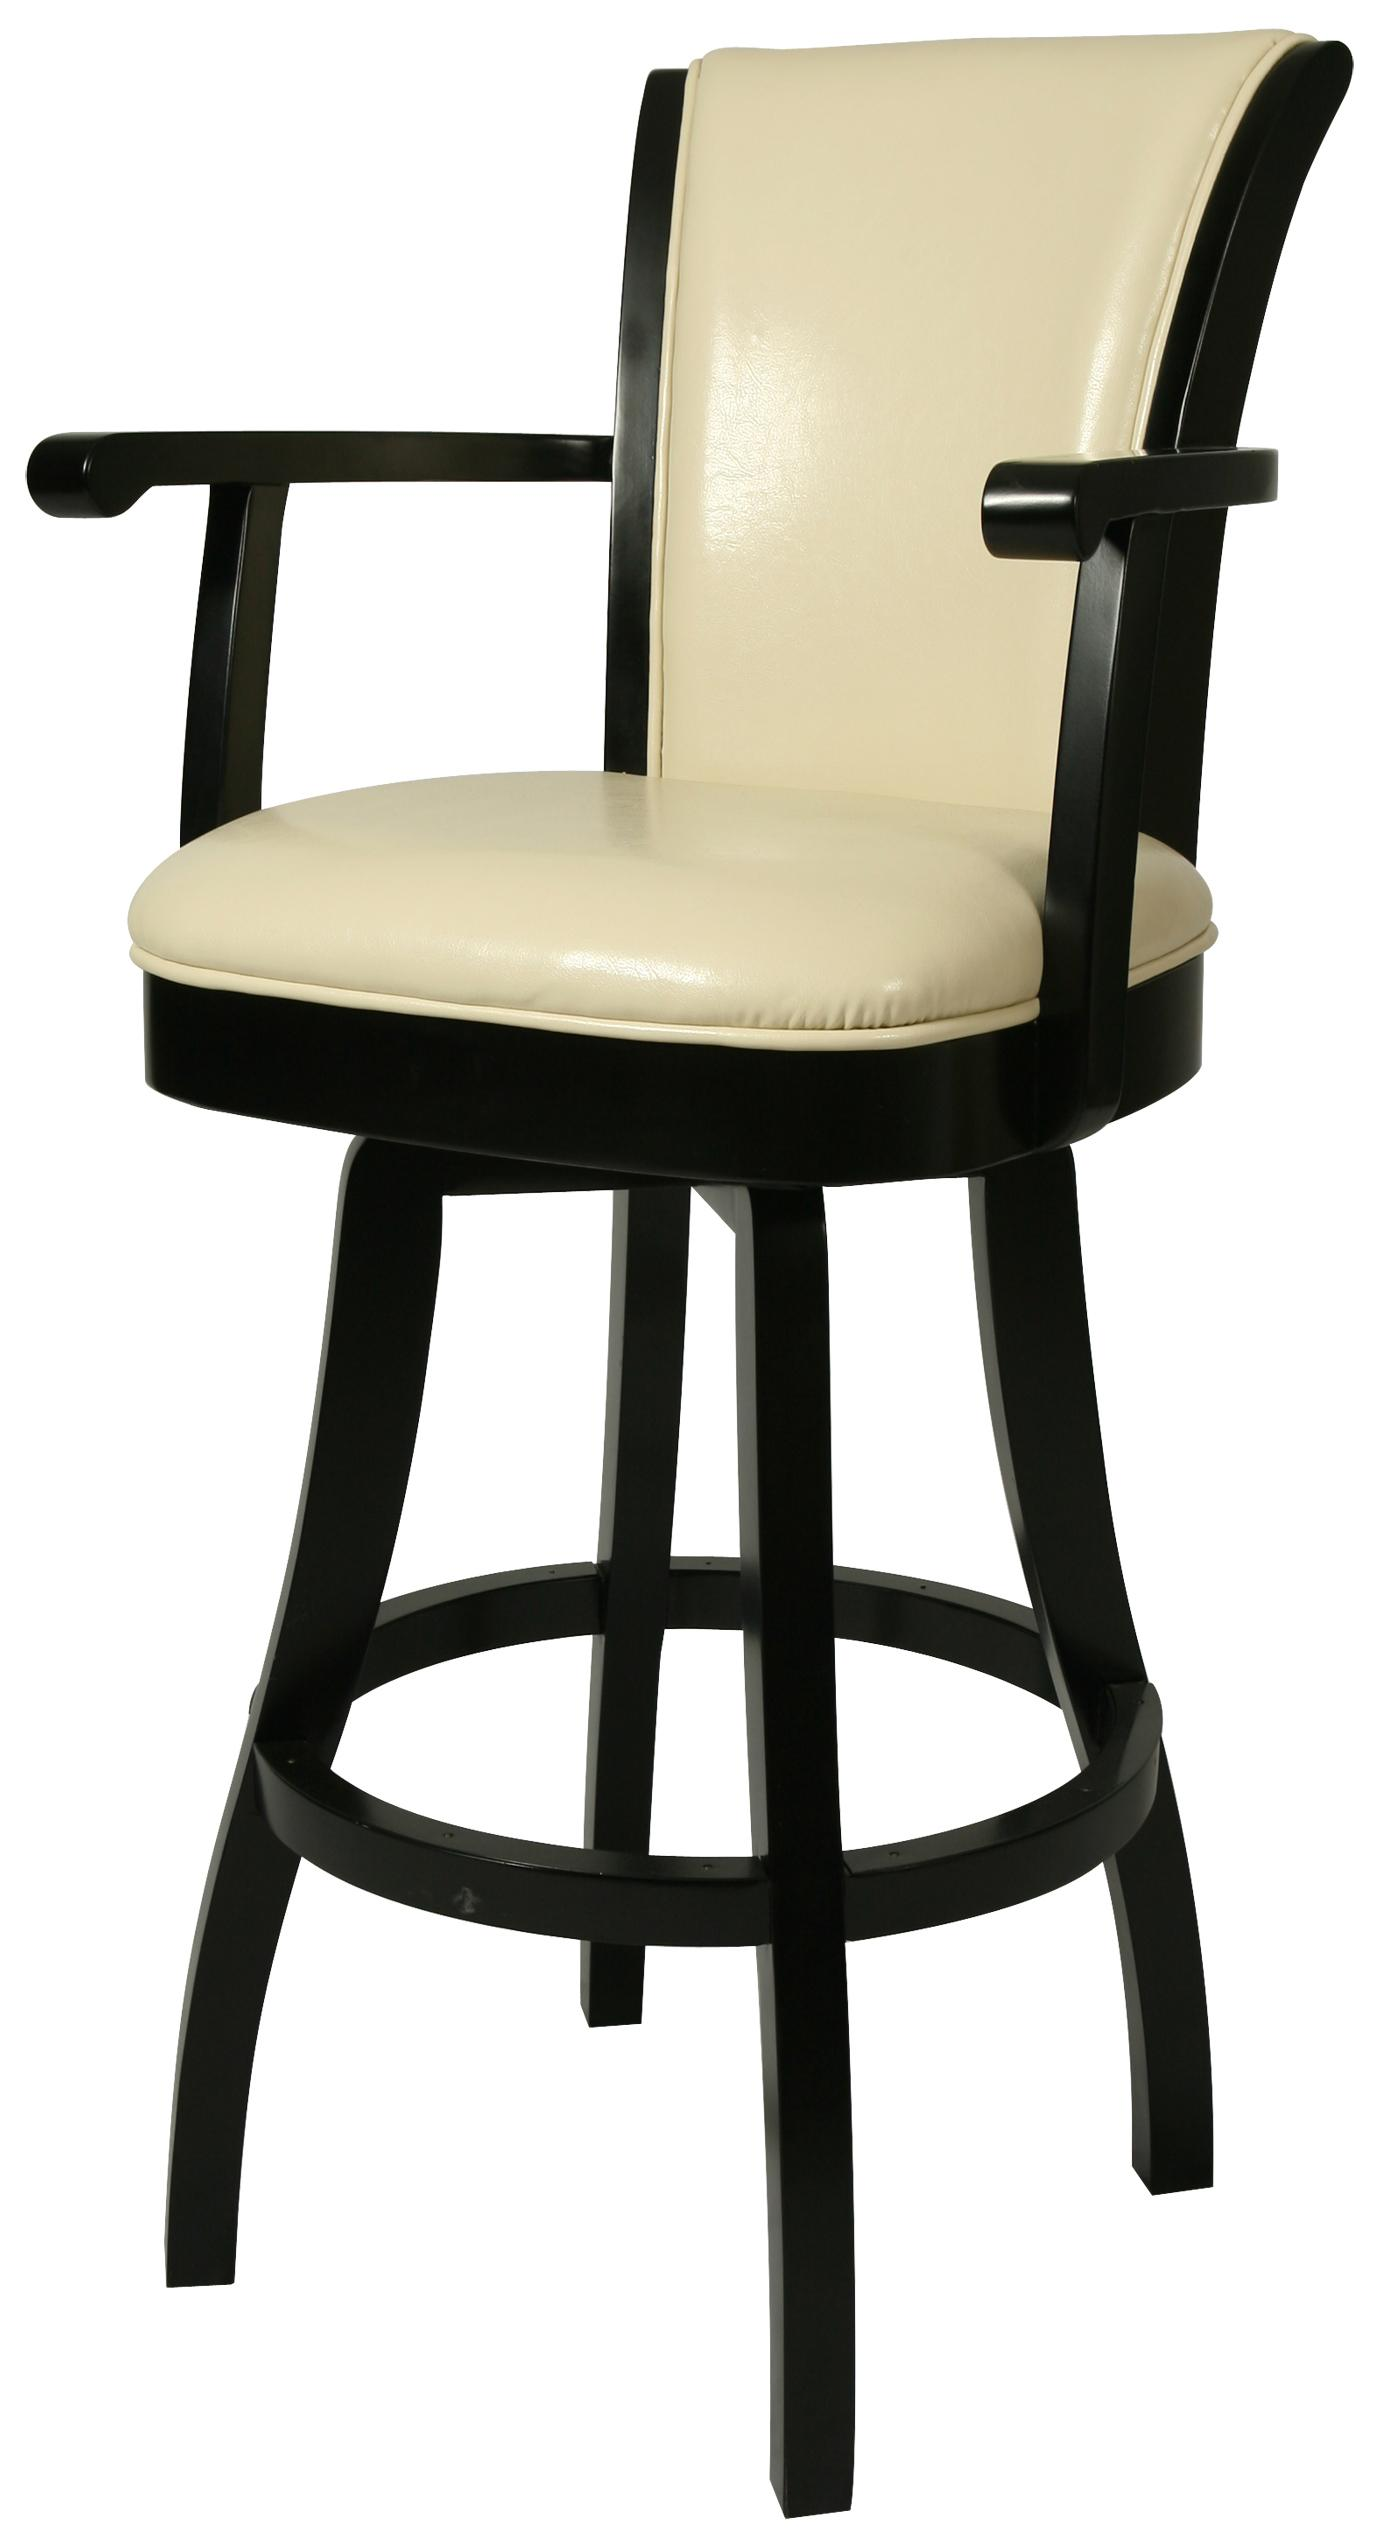 Pastel Minson Bar Stools Collection 26  Glenwood Counter Height Arm Stool - Item Number  sc 1 st  Boulevard Home Furnishings & Pastel Minson Bar Stools Collection 26